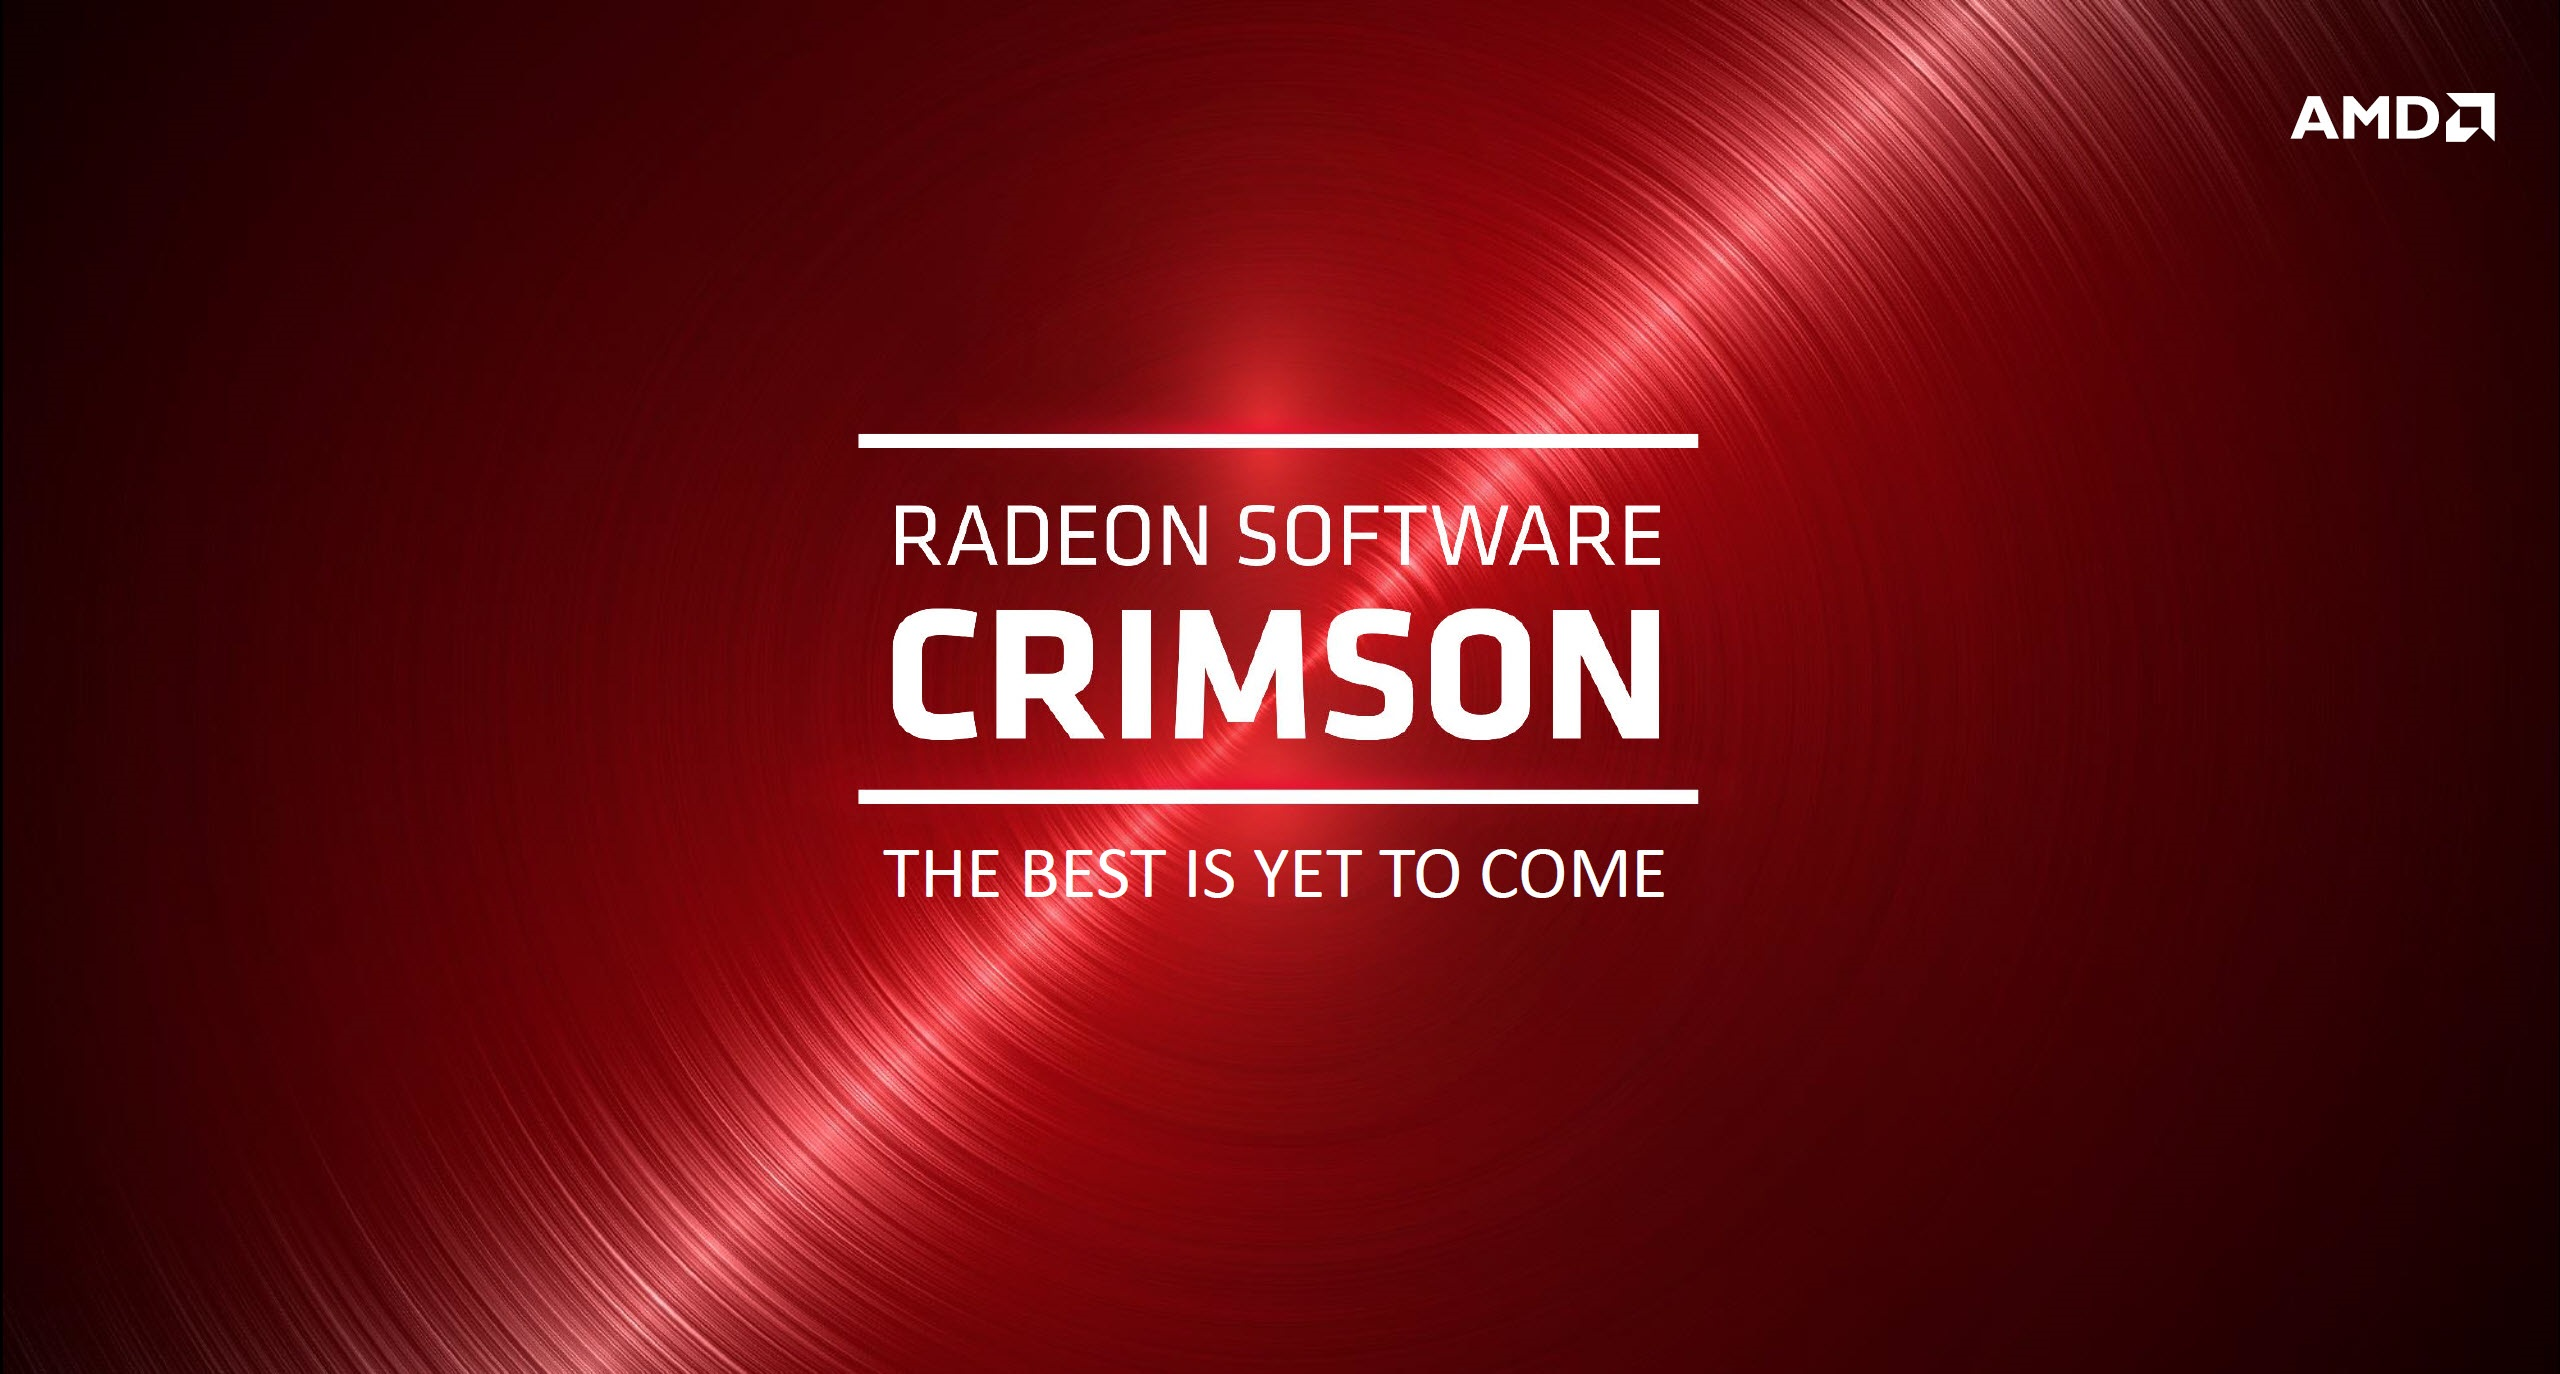 AMD Radeon_Crimson Driver_Best is yet to come